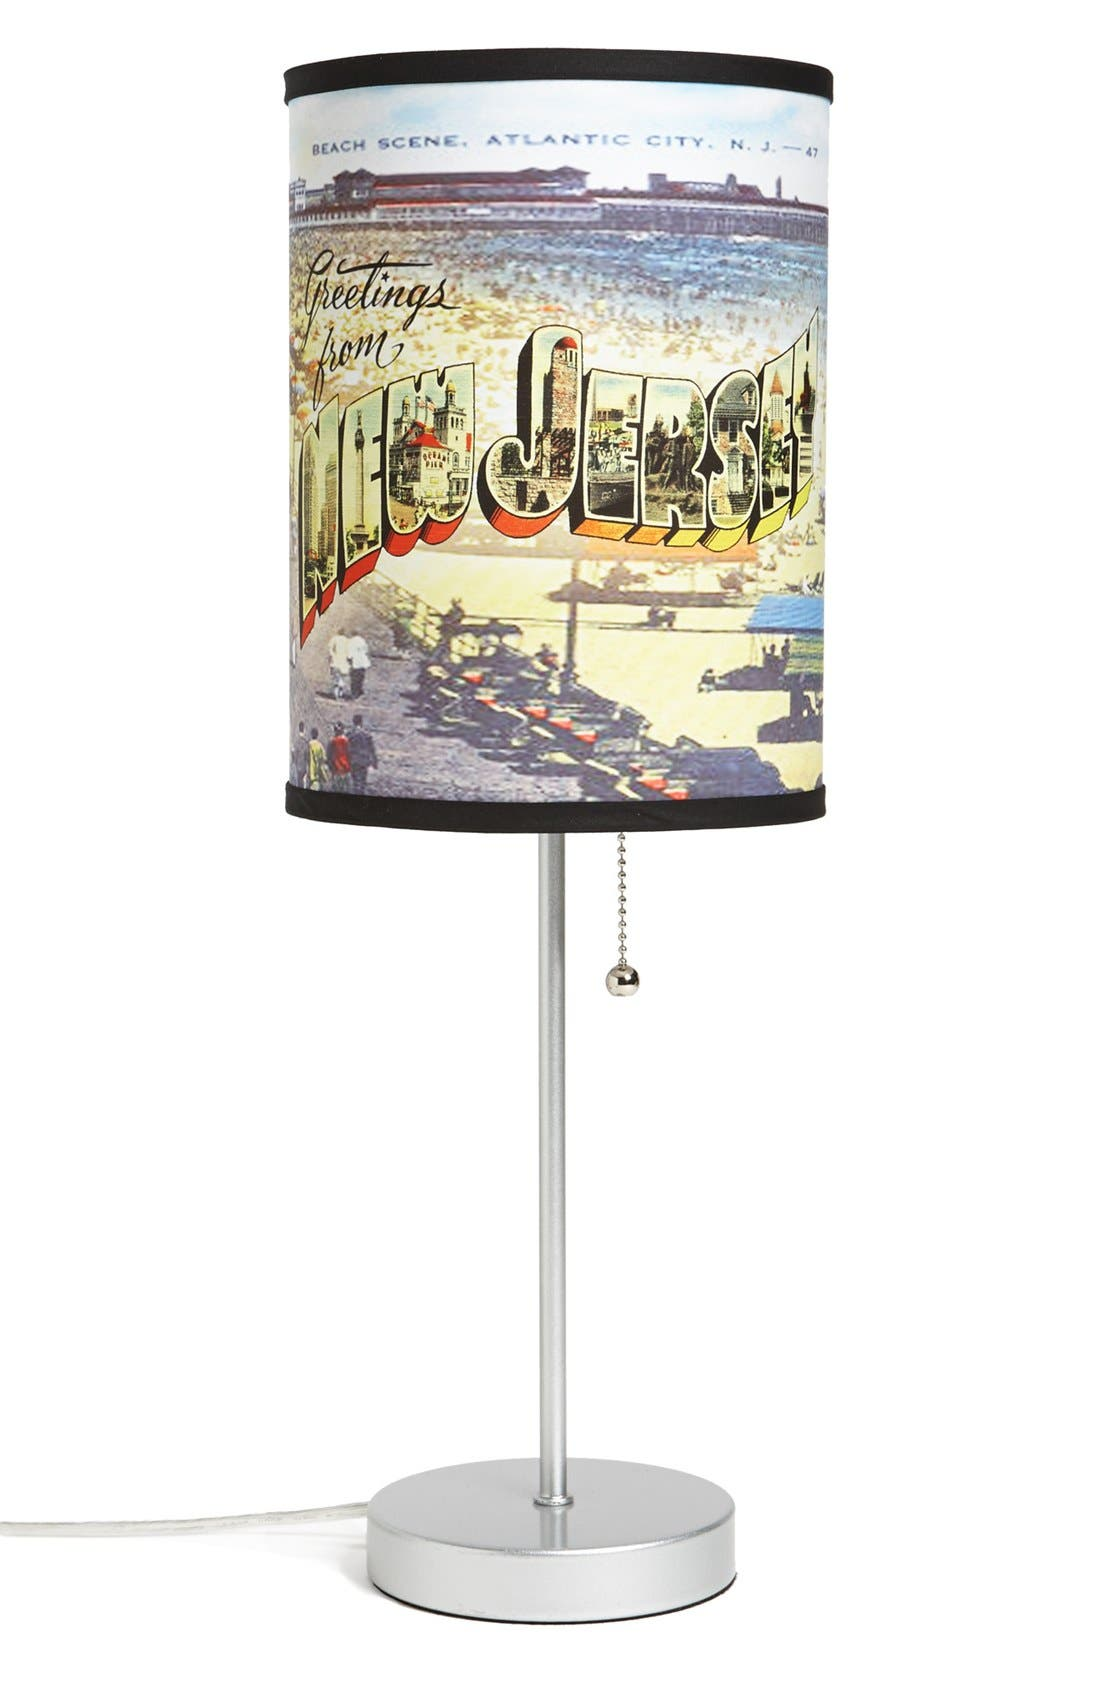 Alternate Image 1 Selected - LAMP-IN-A-BOX 'Greetings from New Jersey' Table Lamp